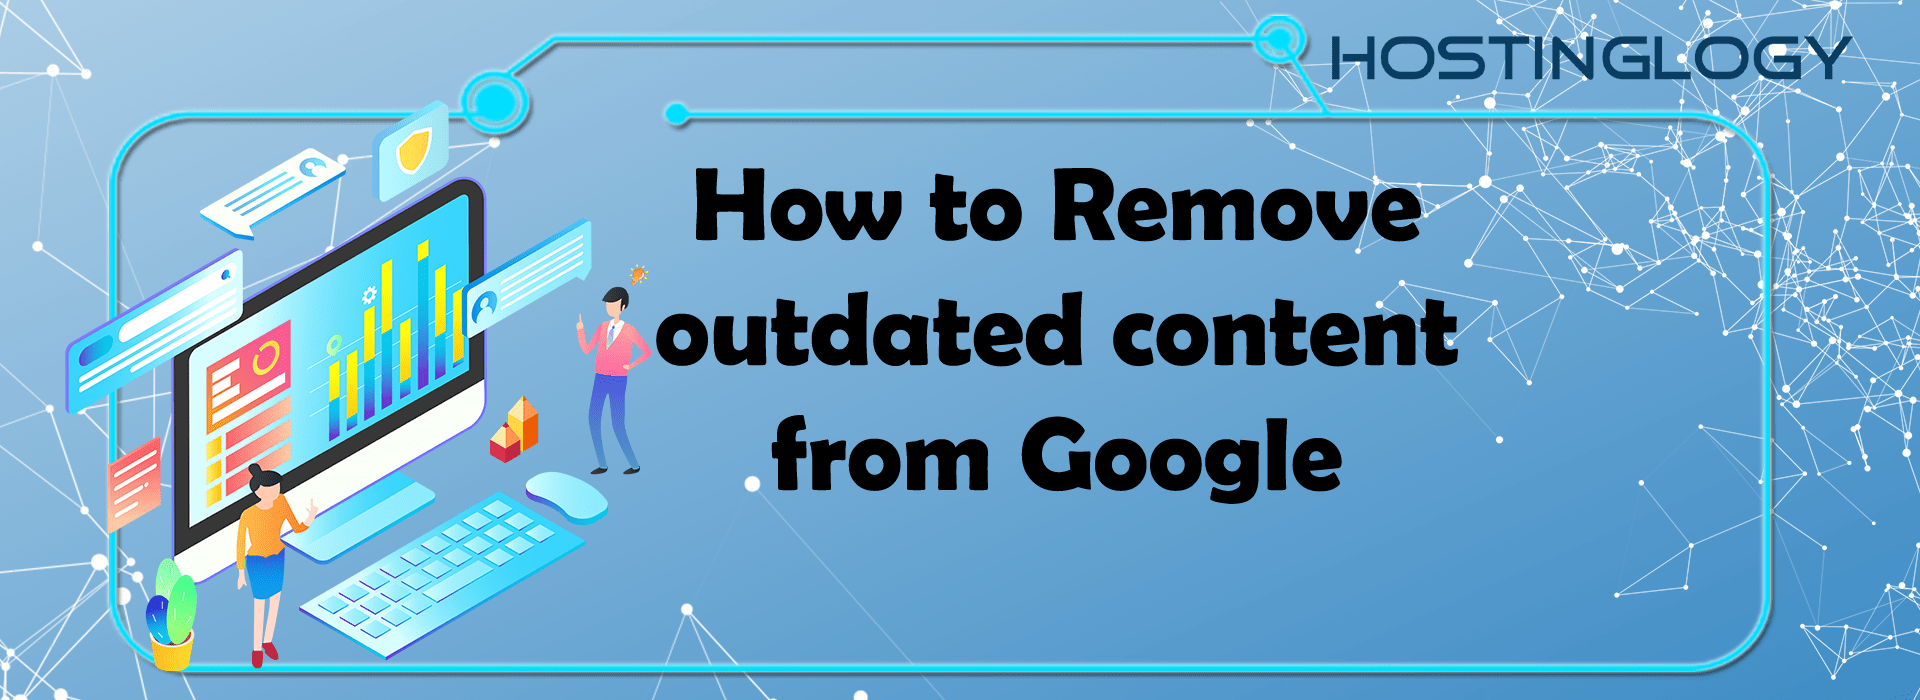 How to Remove outdated content from Google